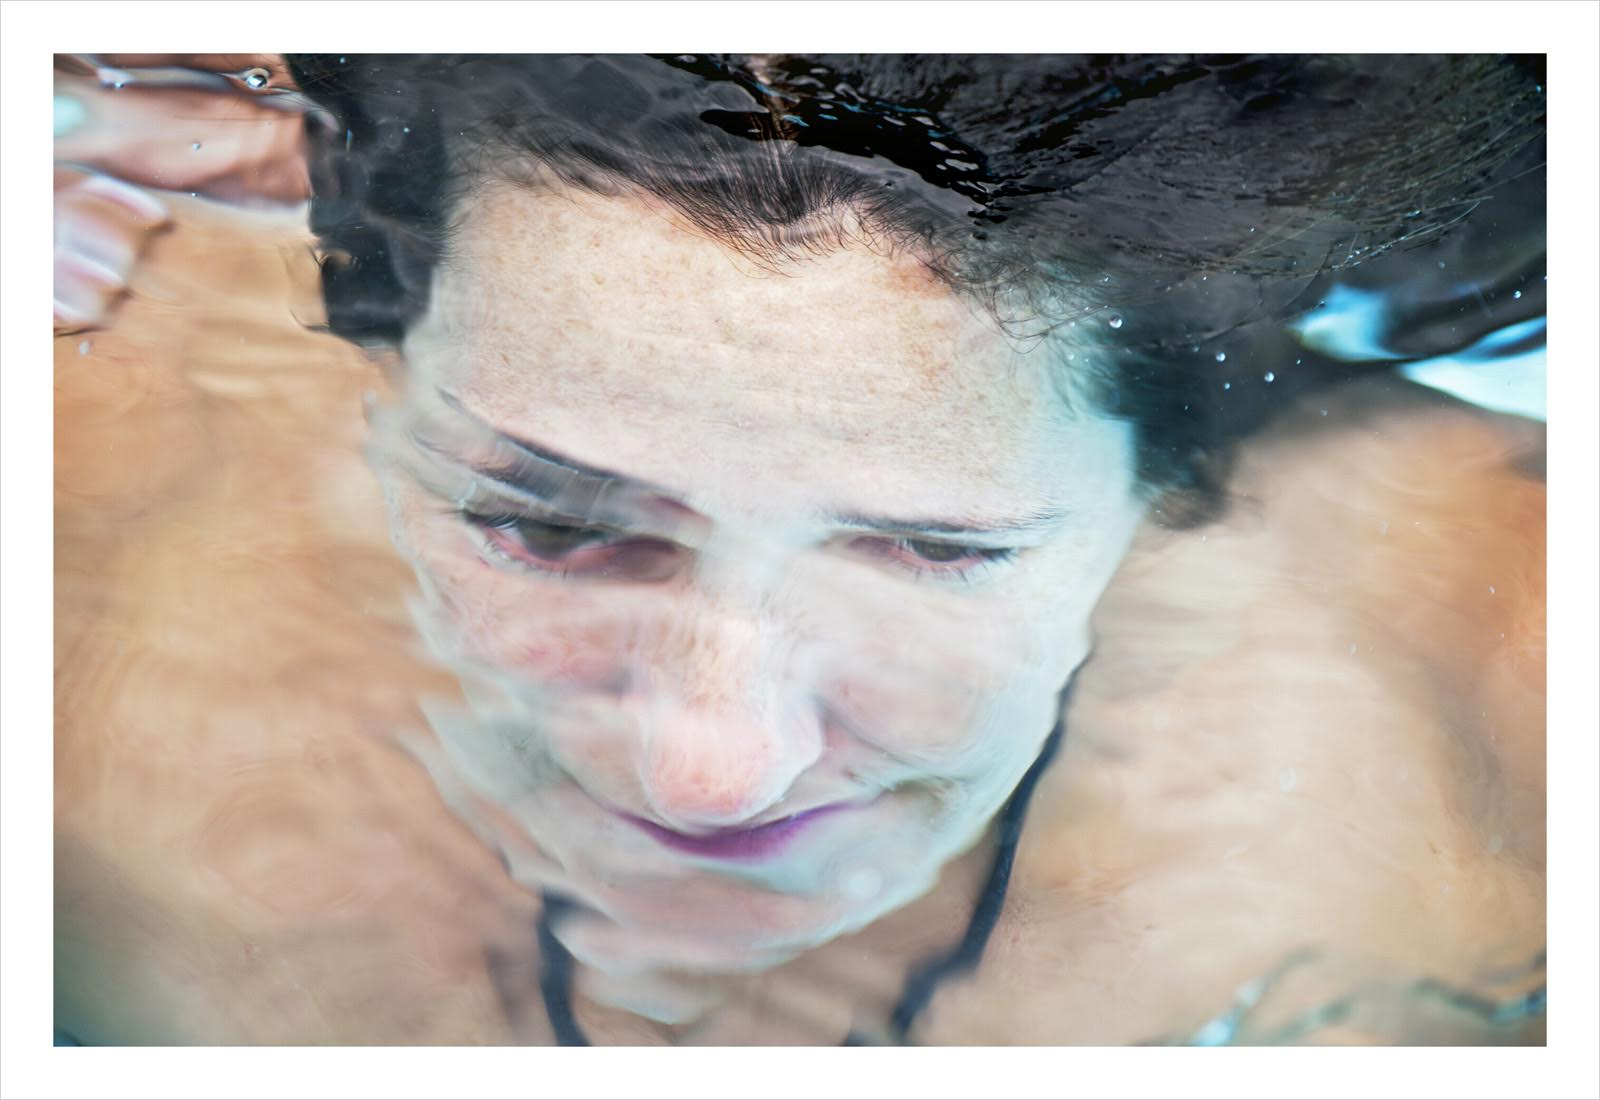 woman under water with one big eye